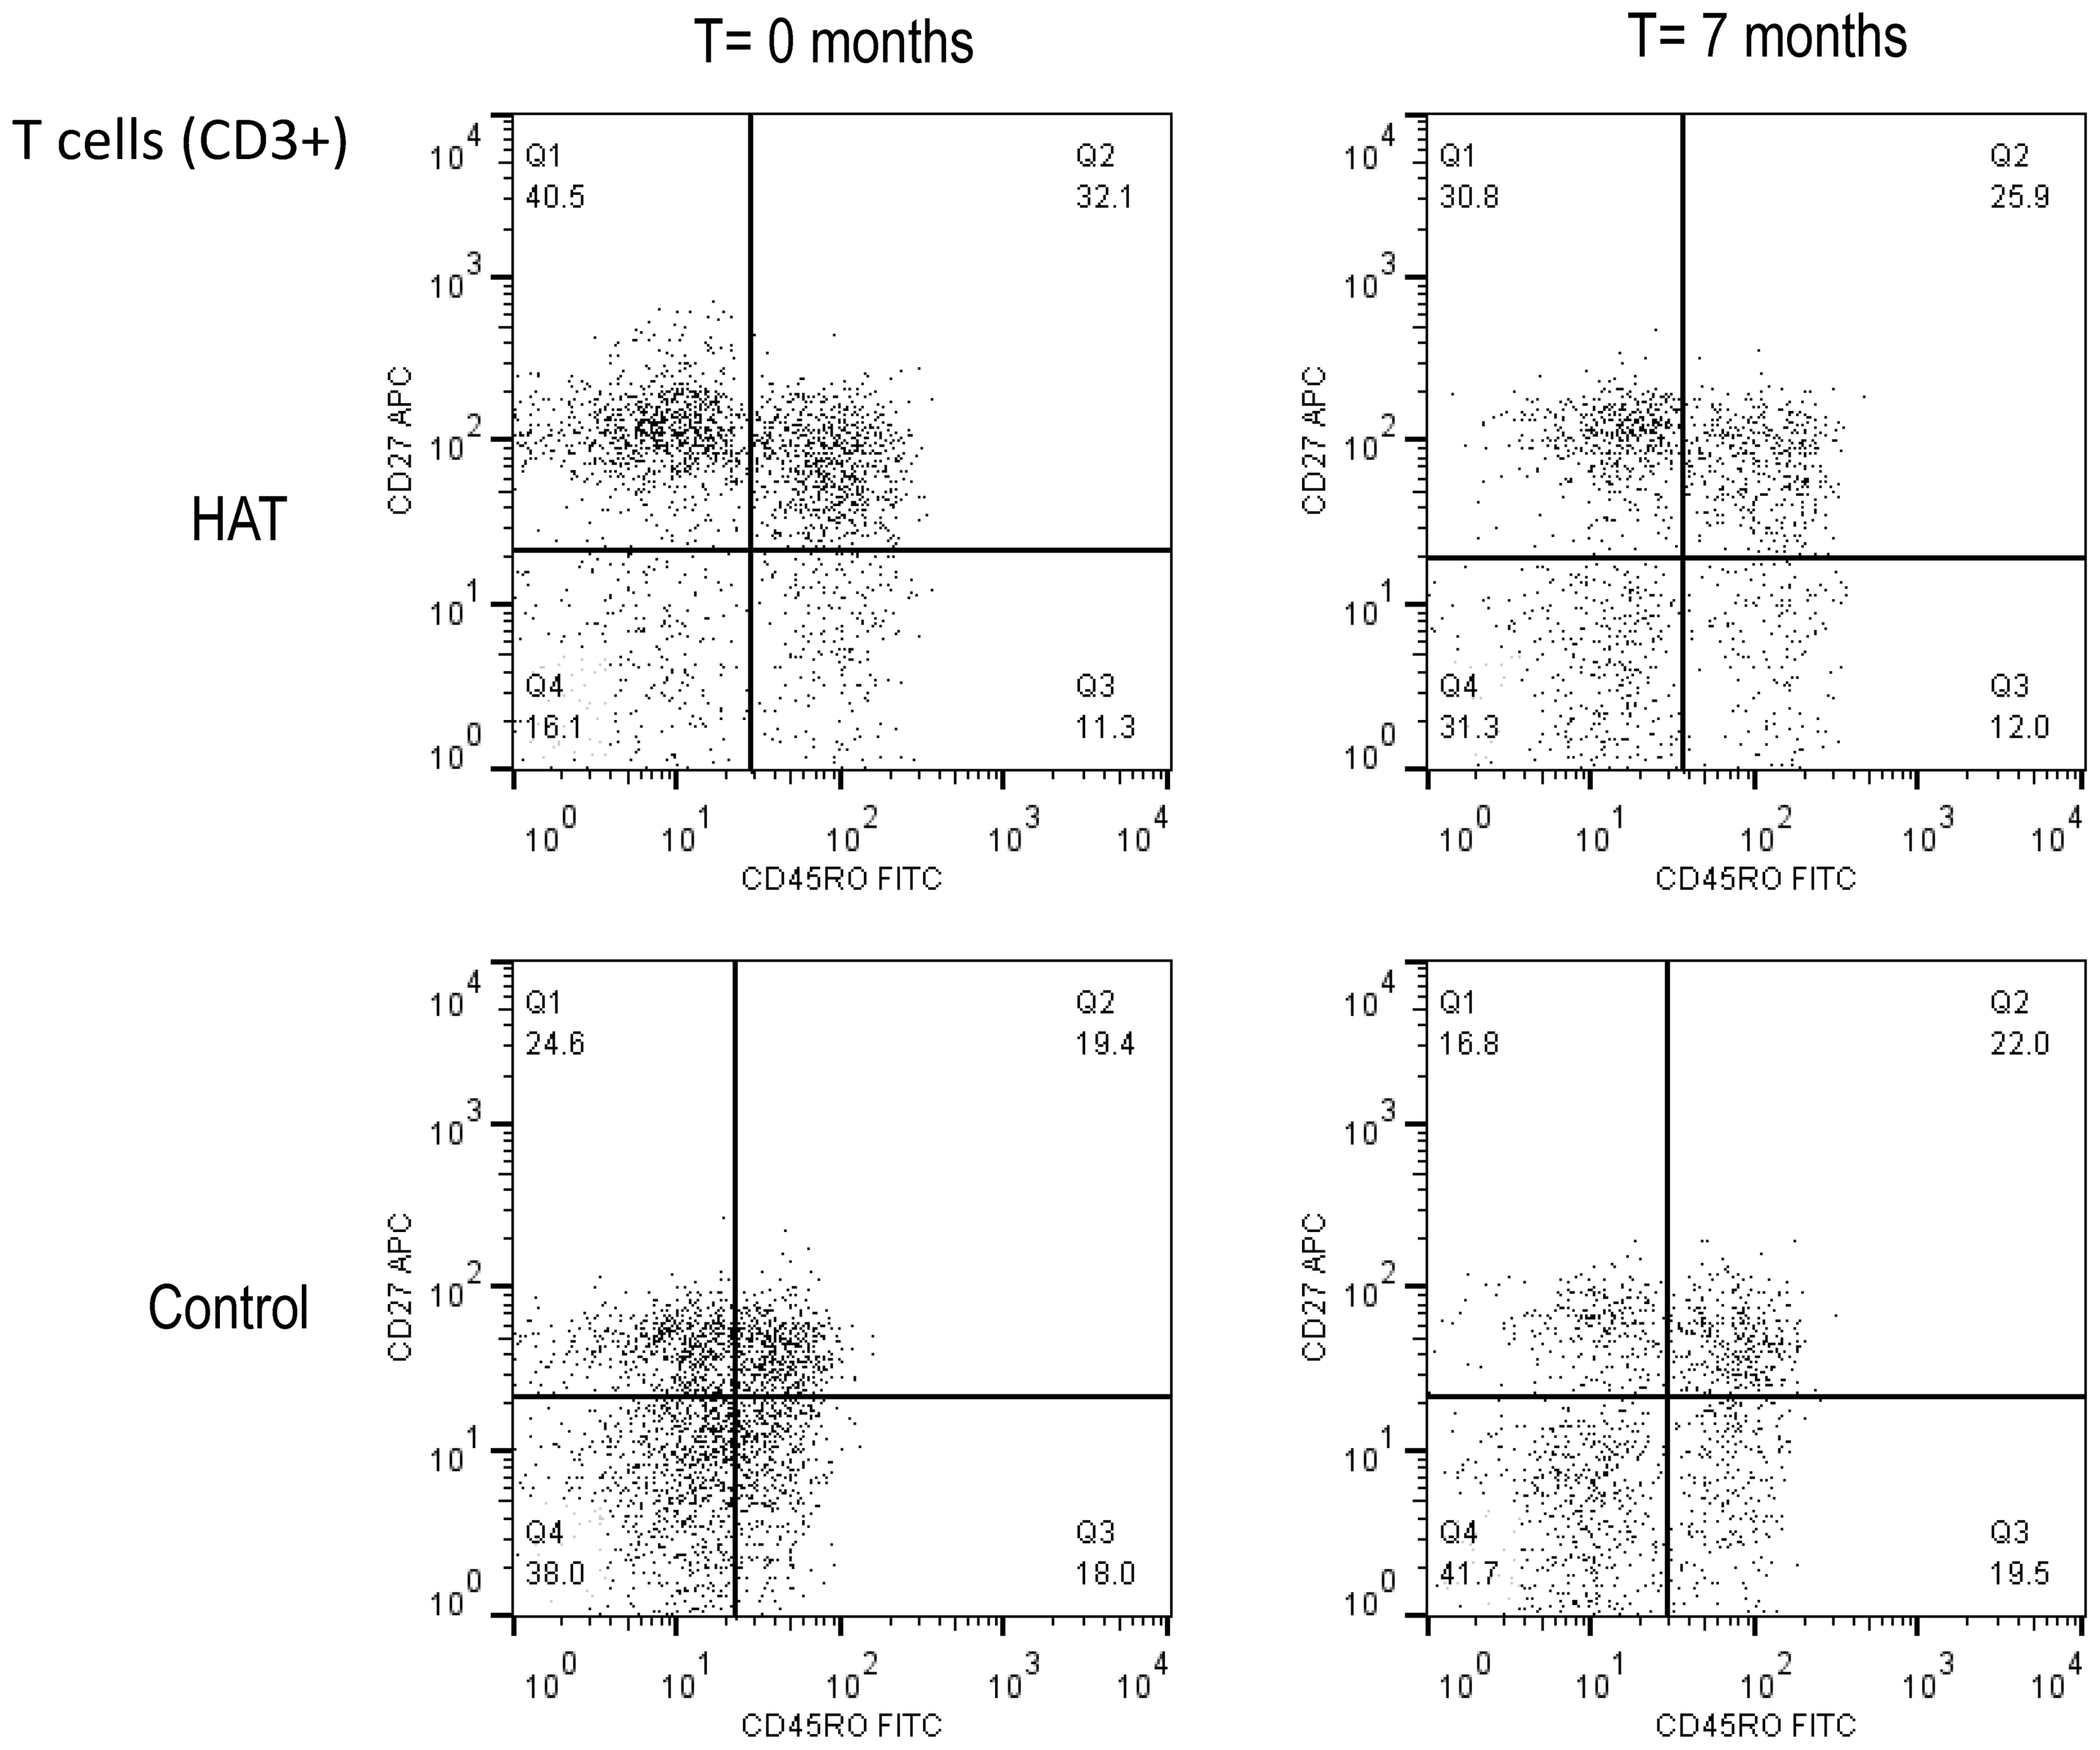 Flow cytometry dot plot of the CD3+ T-cell population in HAT and in a control.